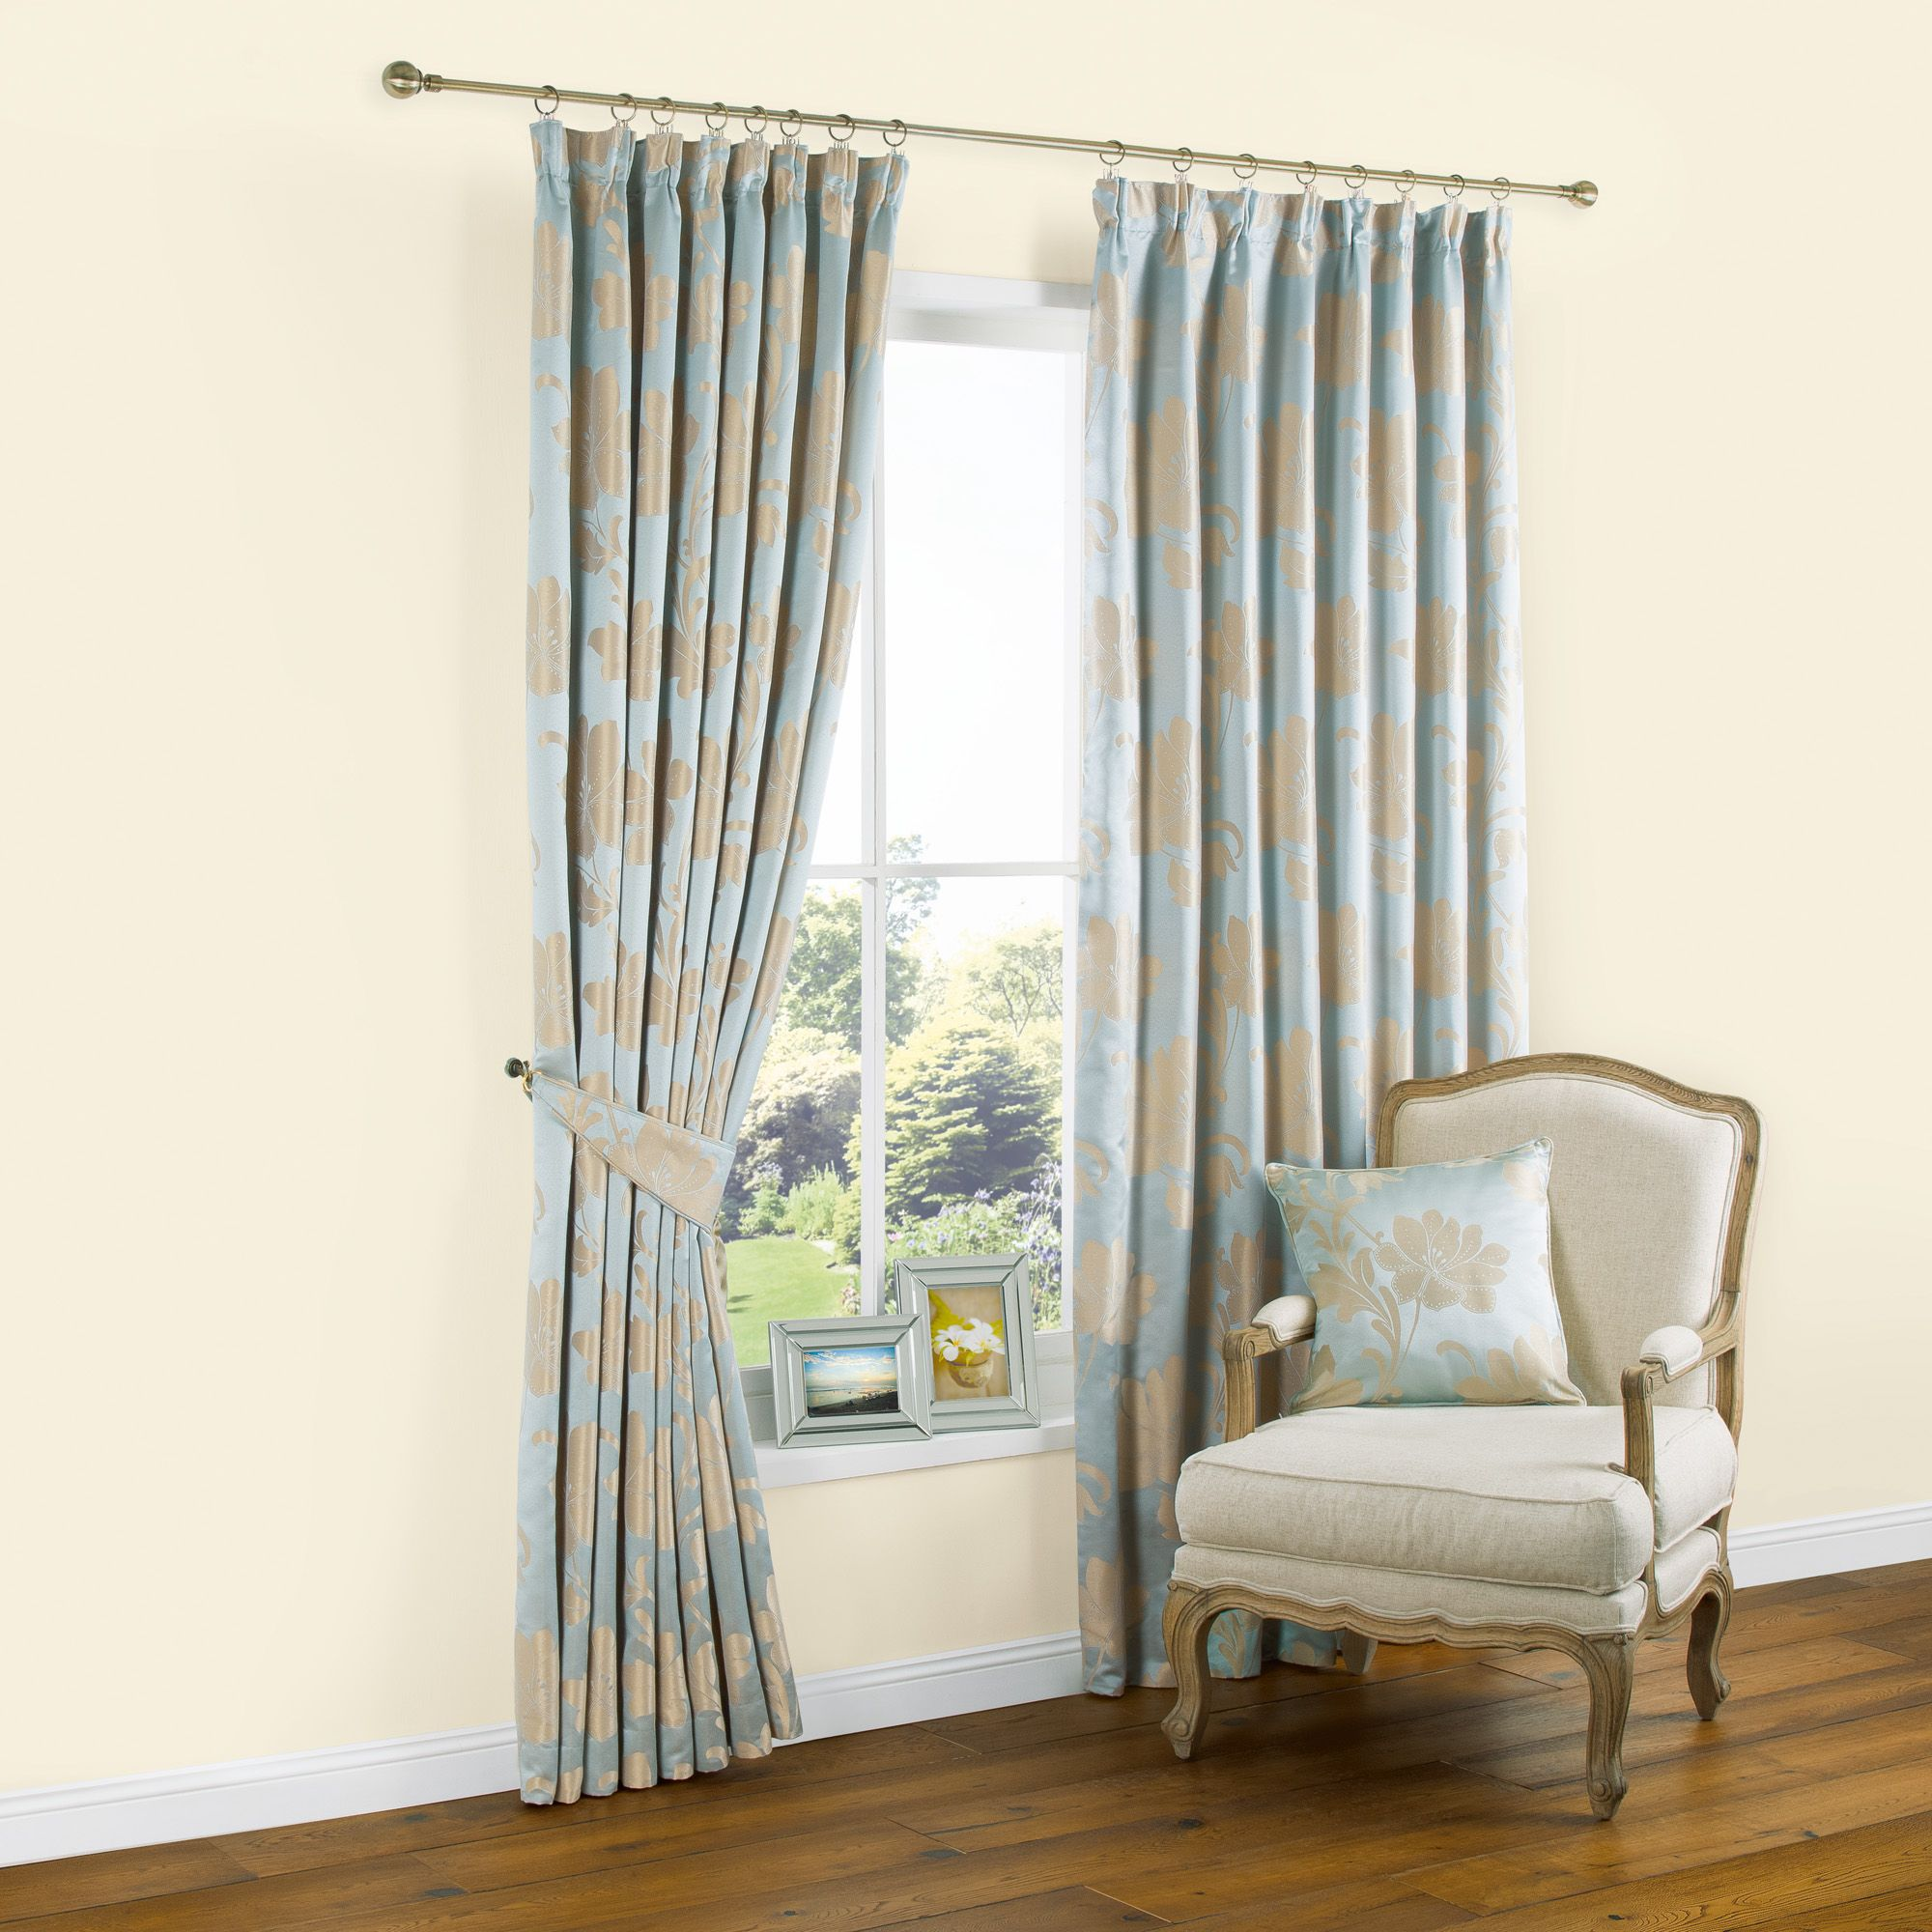 ideas ready bedeck charcoal soto uk picture online curtainsnavy impressive gold curtains size grey made eyelet patterned corry full ireland and bedding of at navy harry blue curtainsnavynelsgold curtain